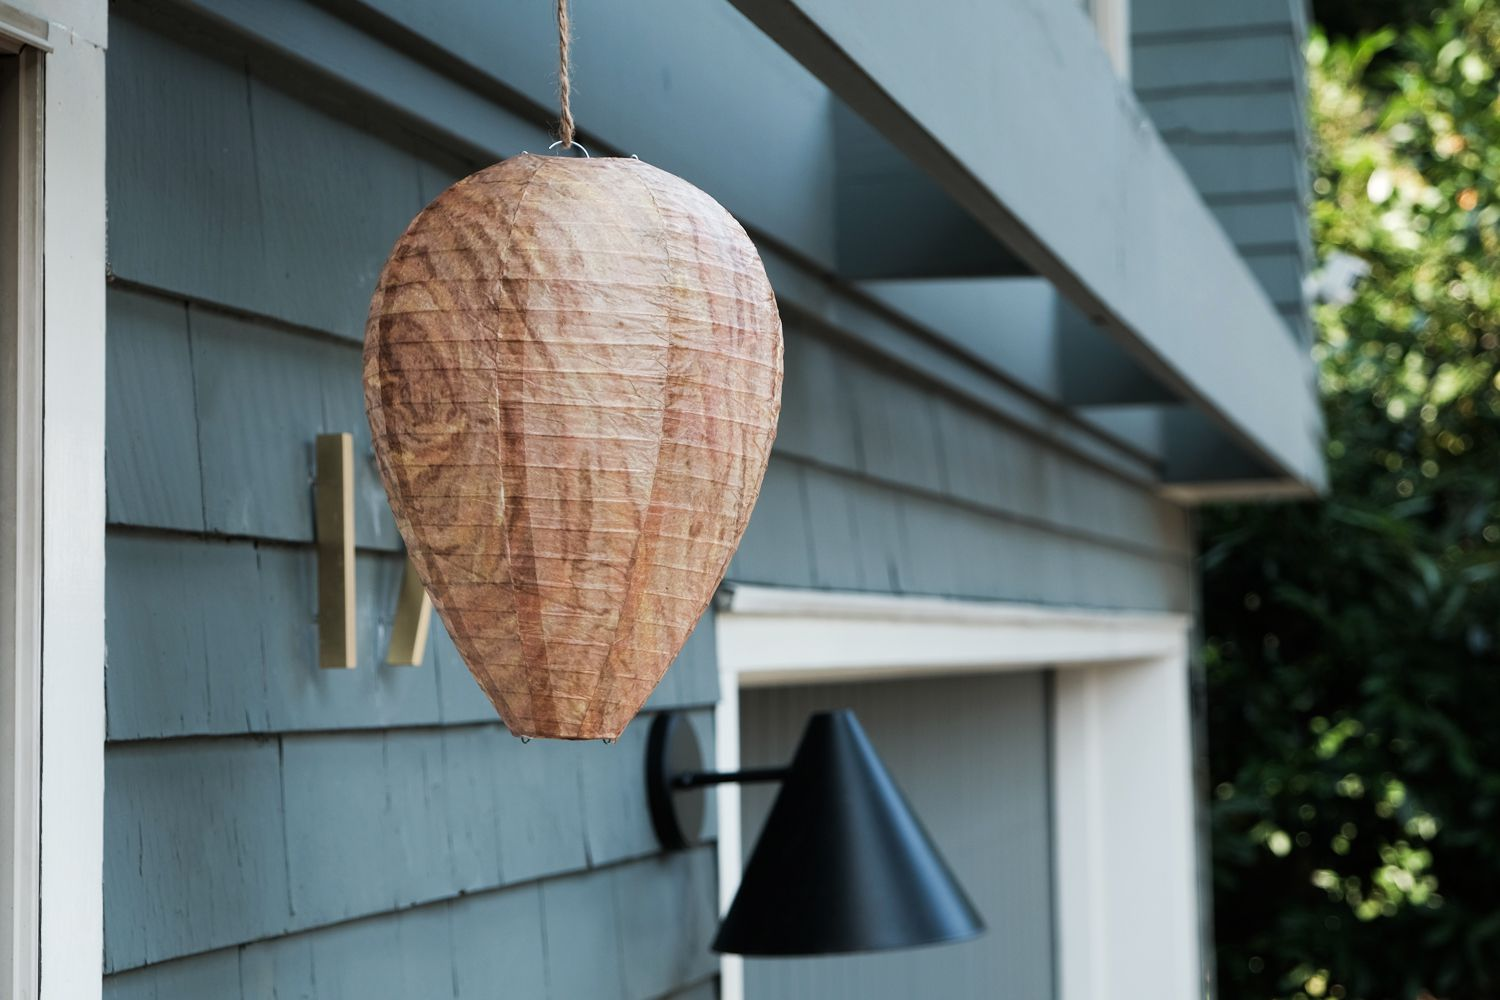 a fake hornets nest hangs outside house to prevent wasps and hornets from making real nest